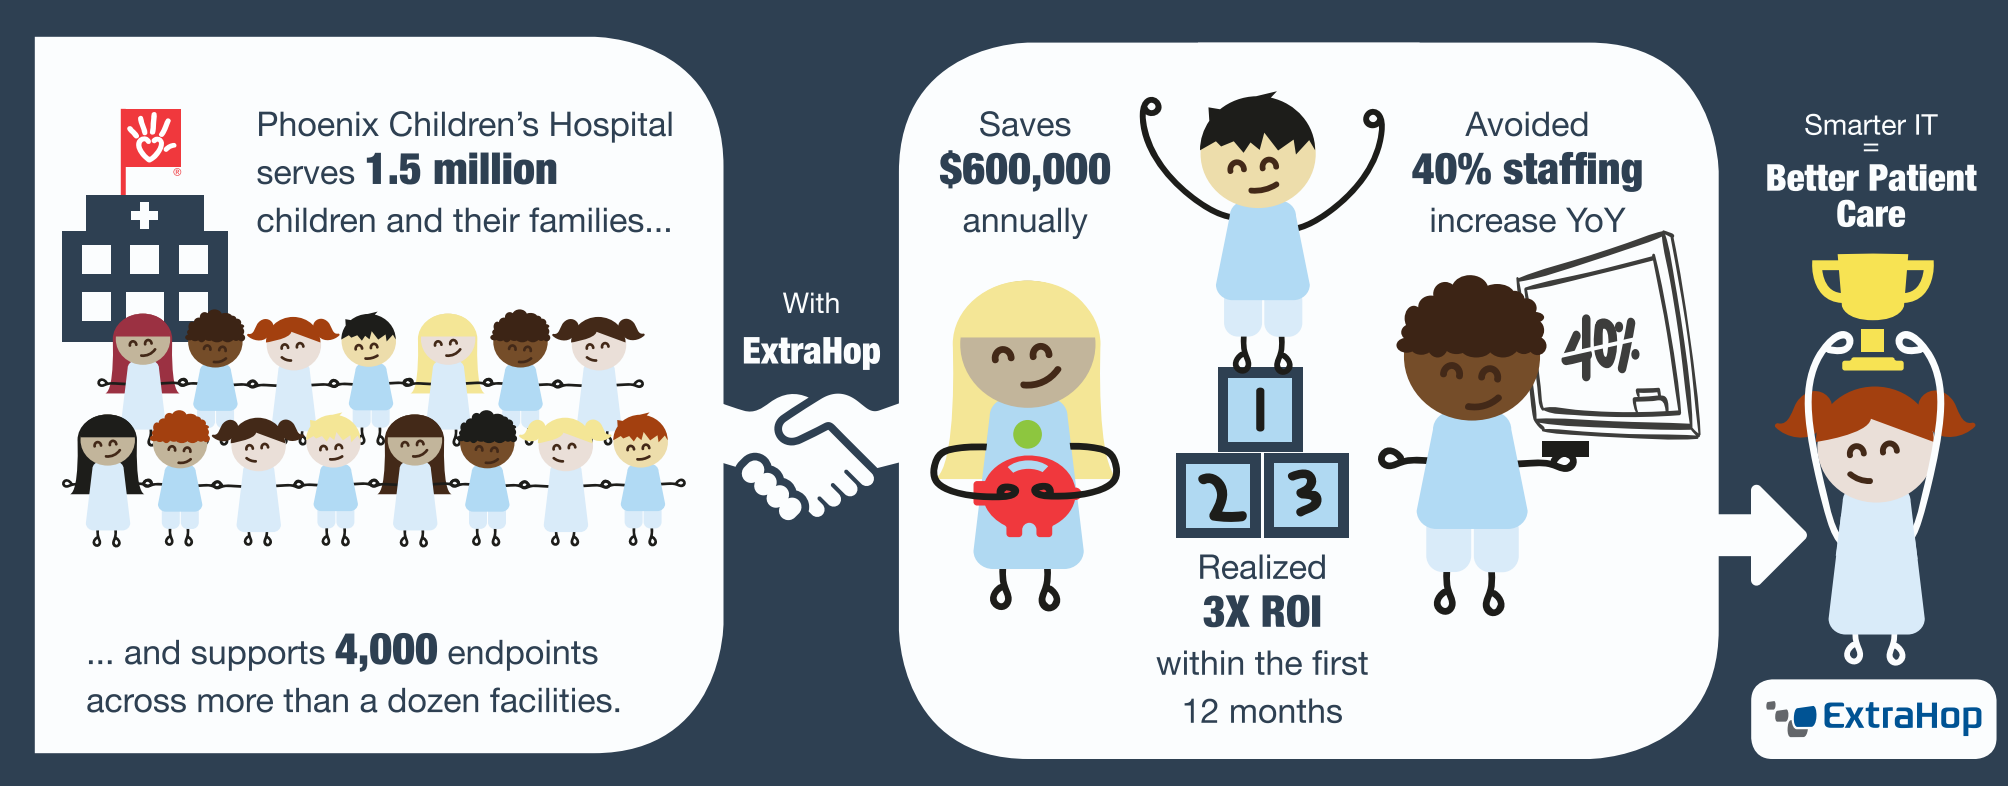 Phoenix Children's Hospital Saves $600,000 Annually in IT Staffing Costs with ExtraHop Infographic